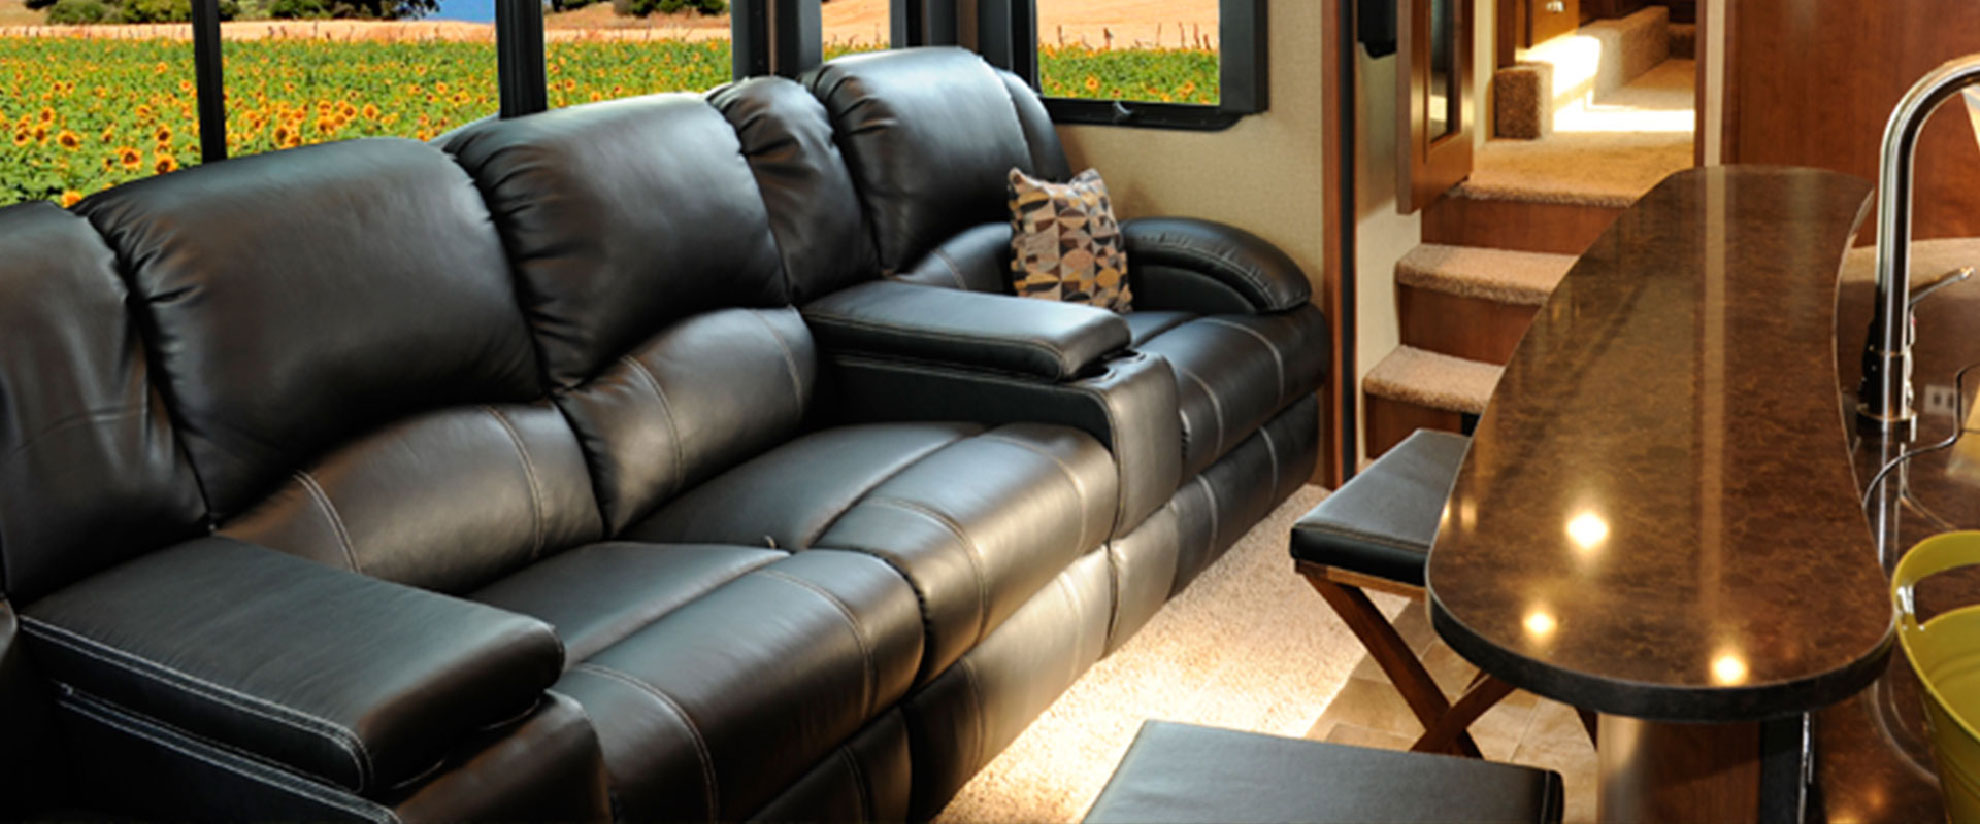 RV Furniture - Welcome To RVTECH